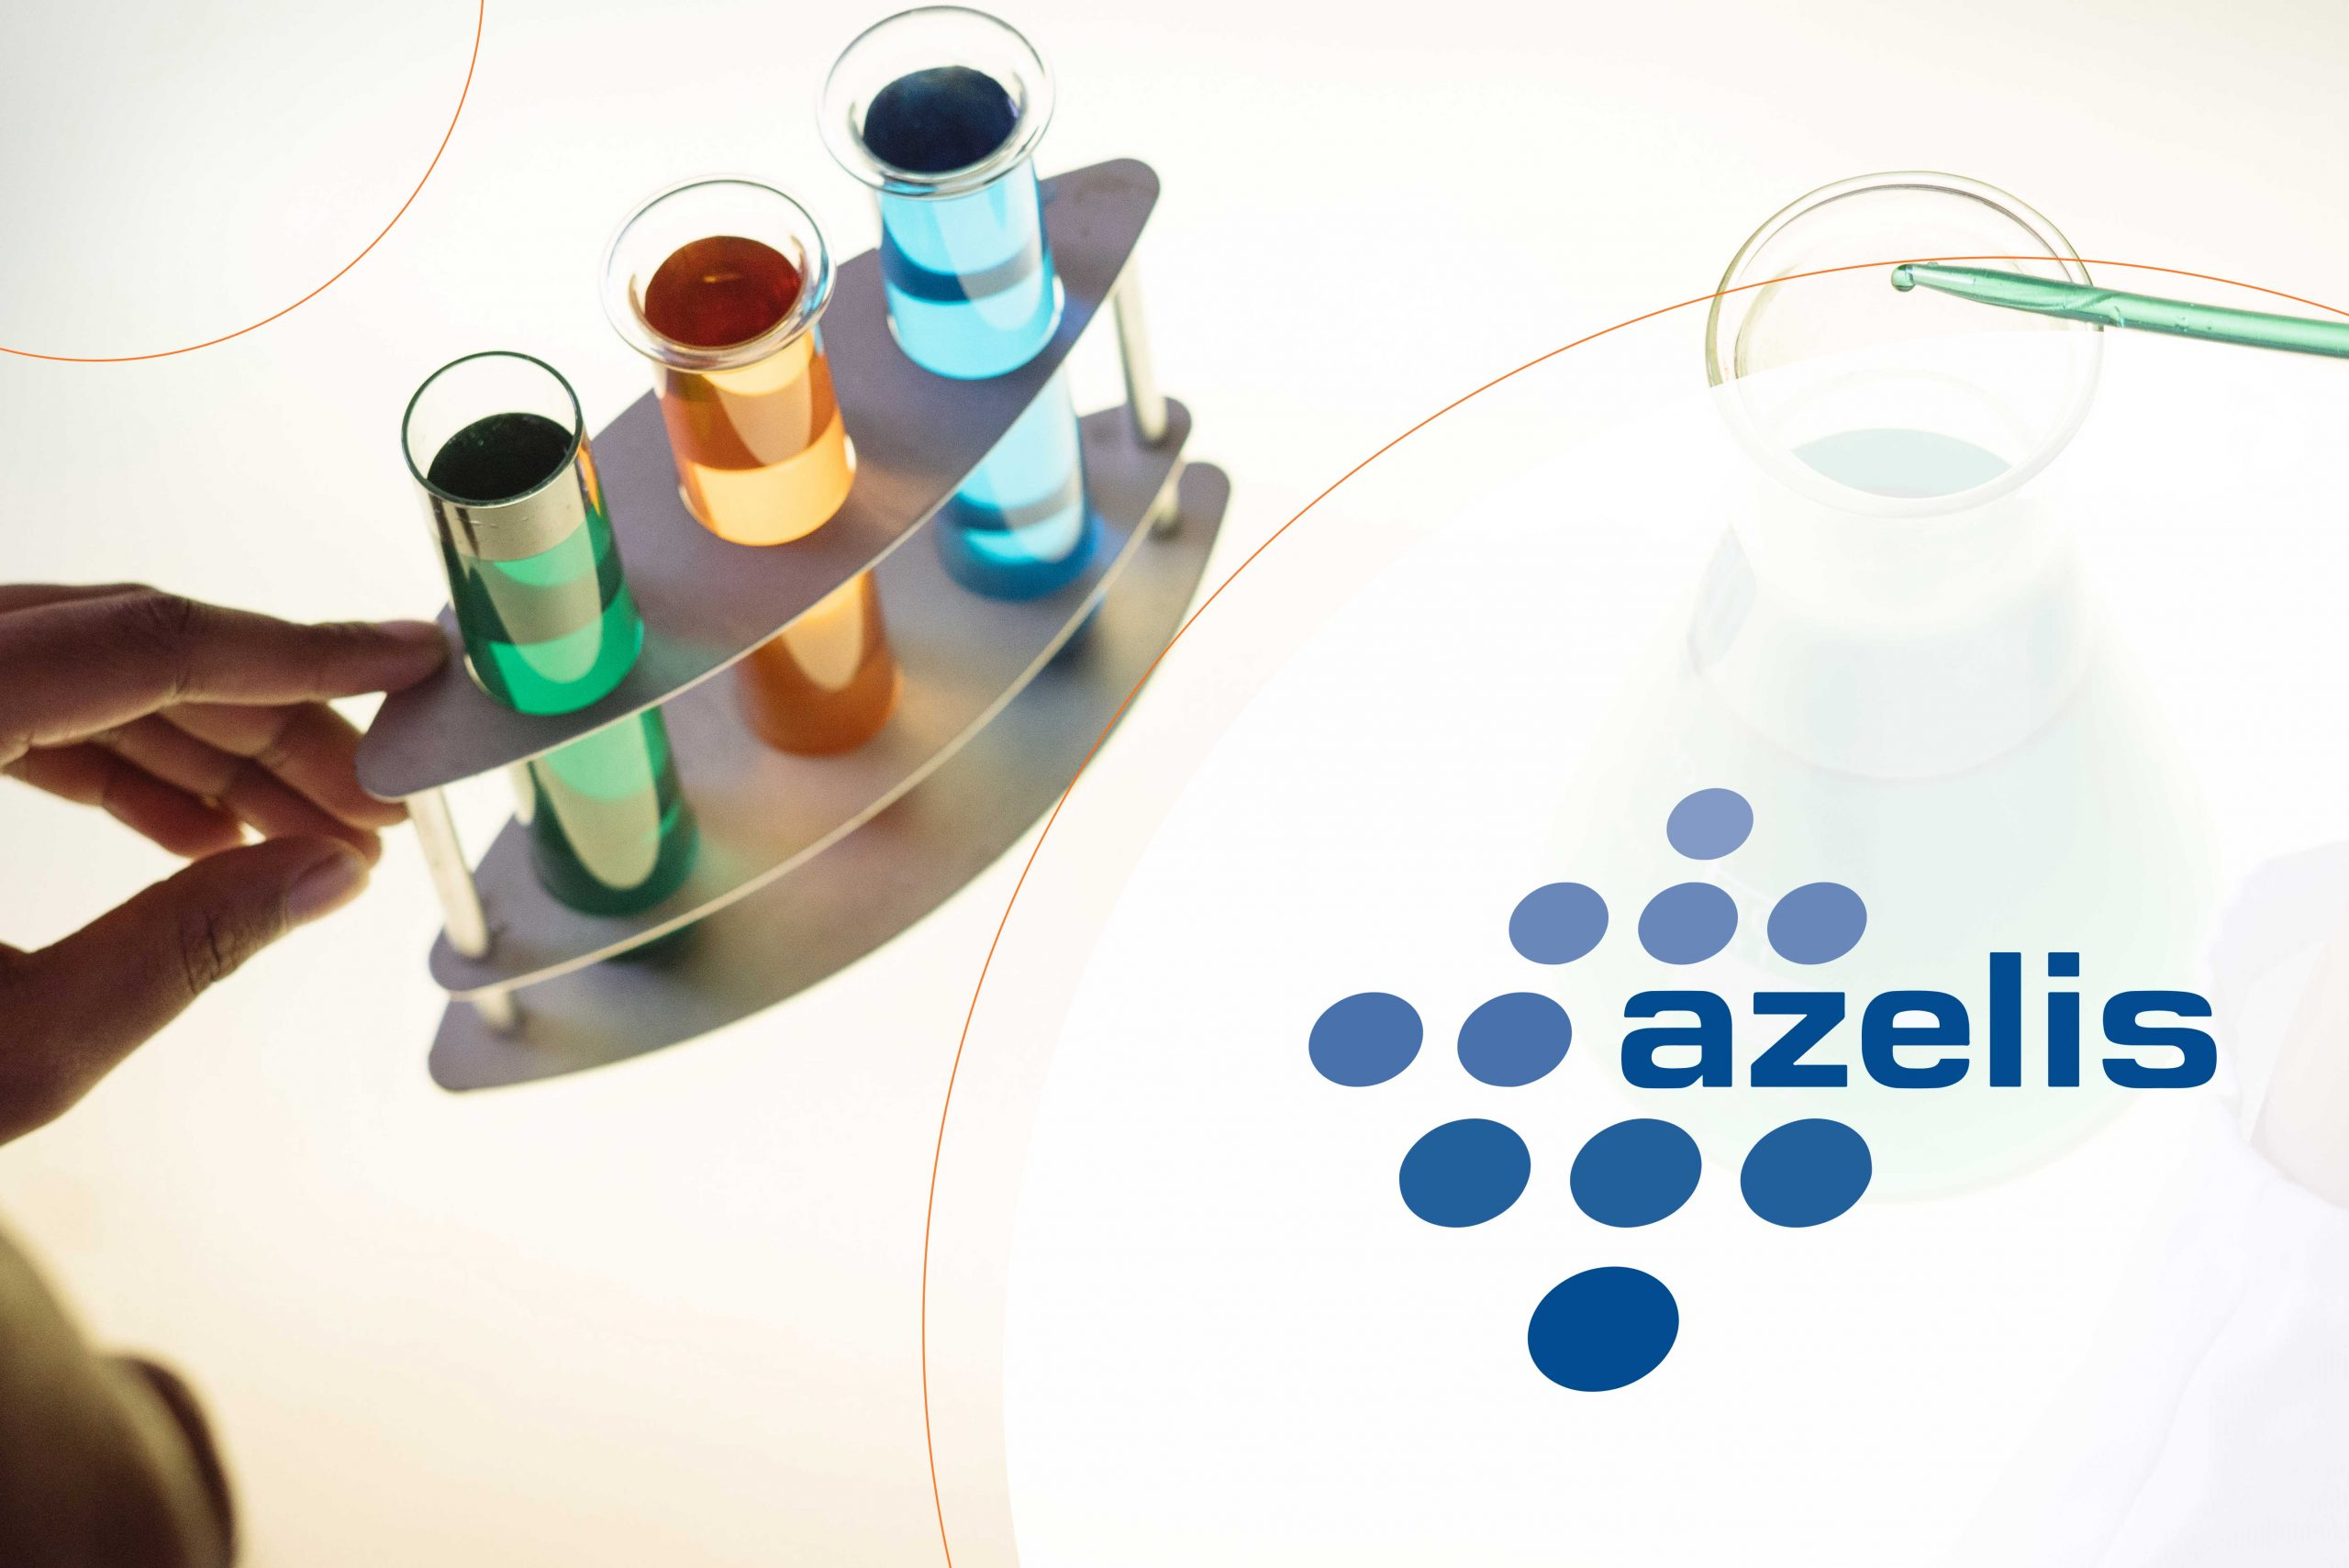 azelis success story